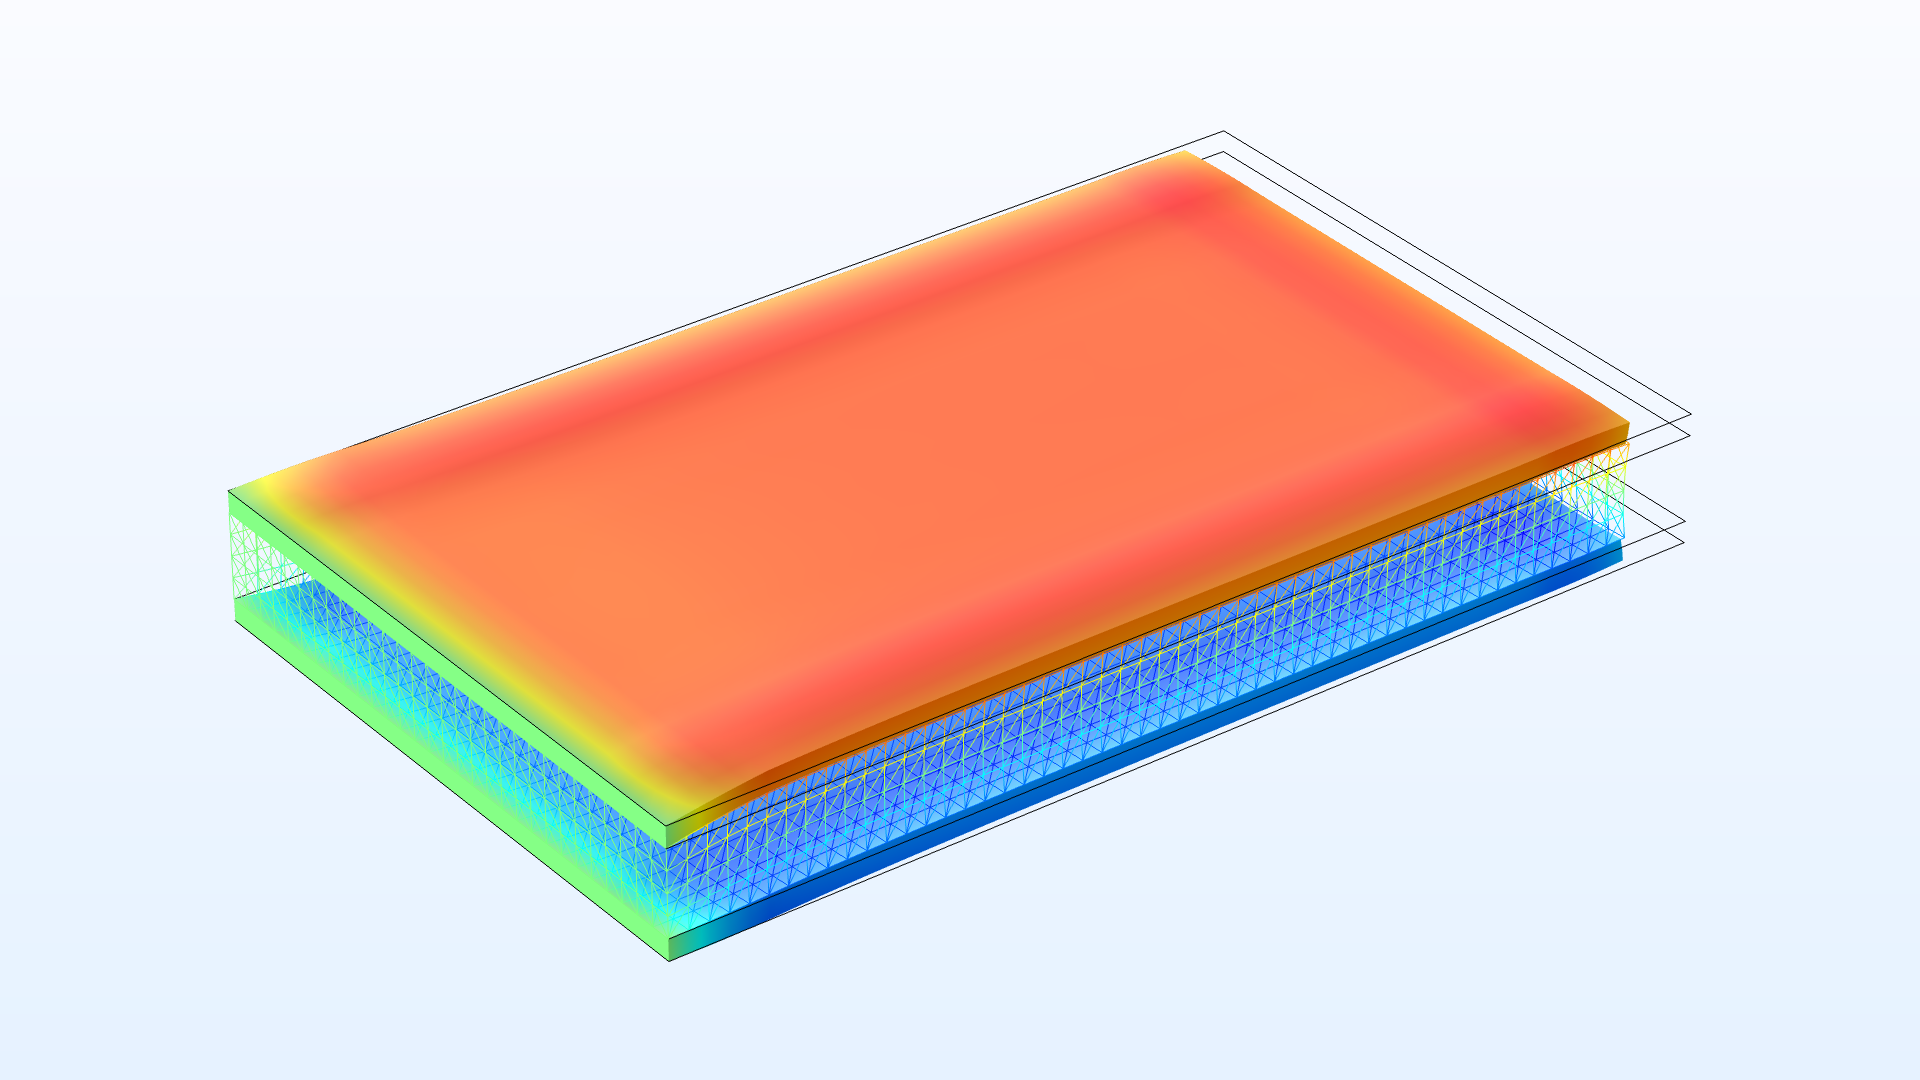 Model piezoelectric materials with the Layered Shell interface.